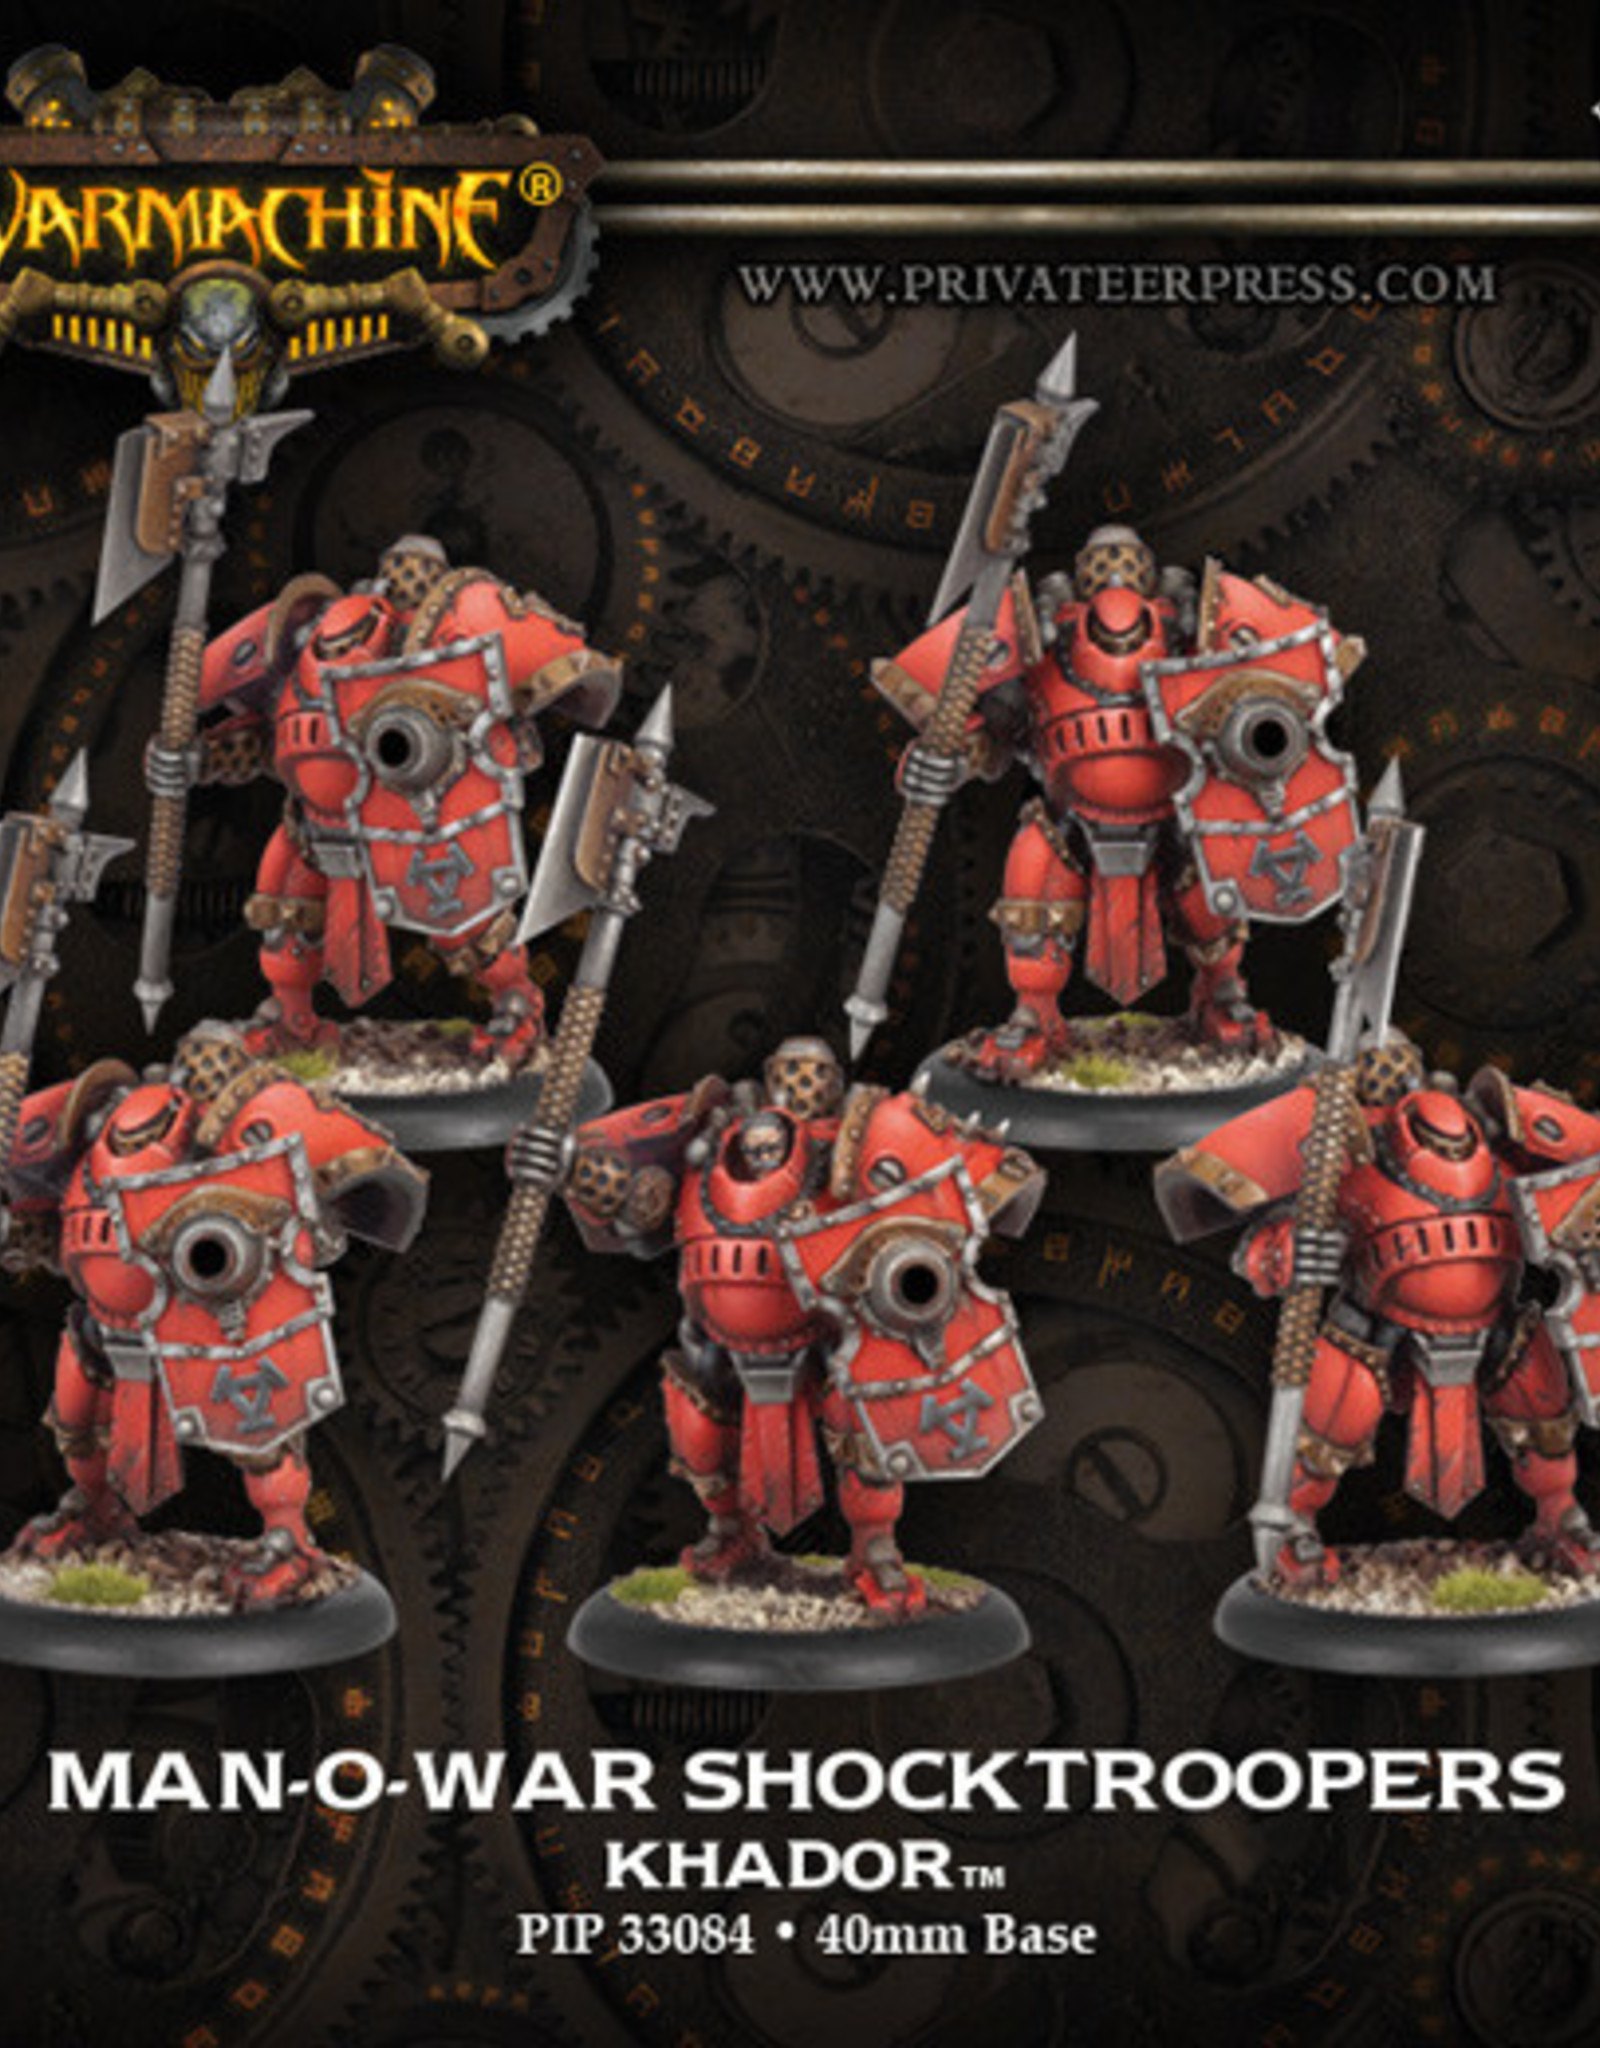 Warmachine Khador - MoW Shocktroopers